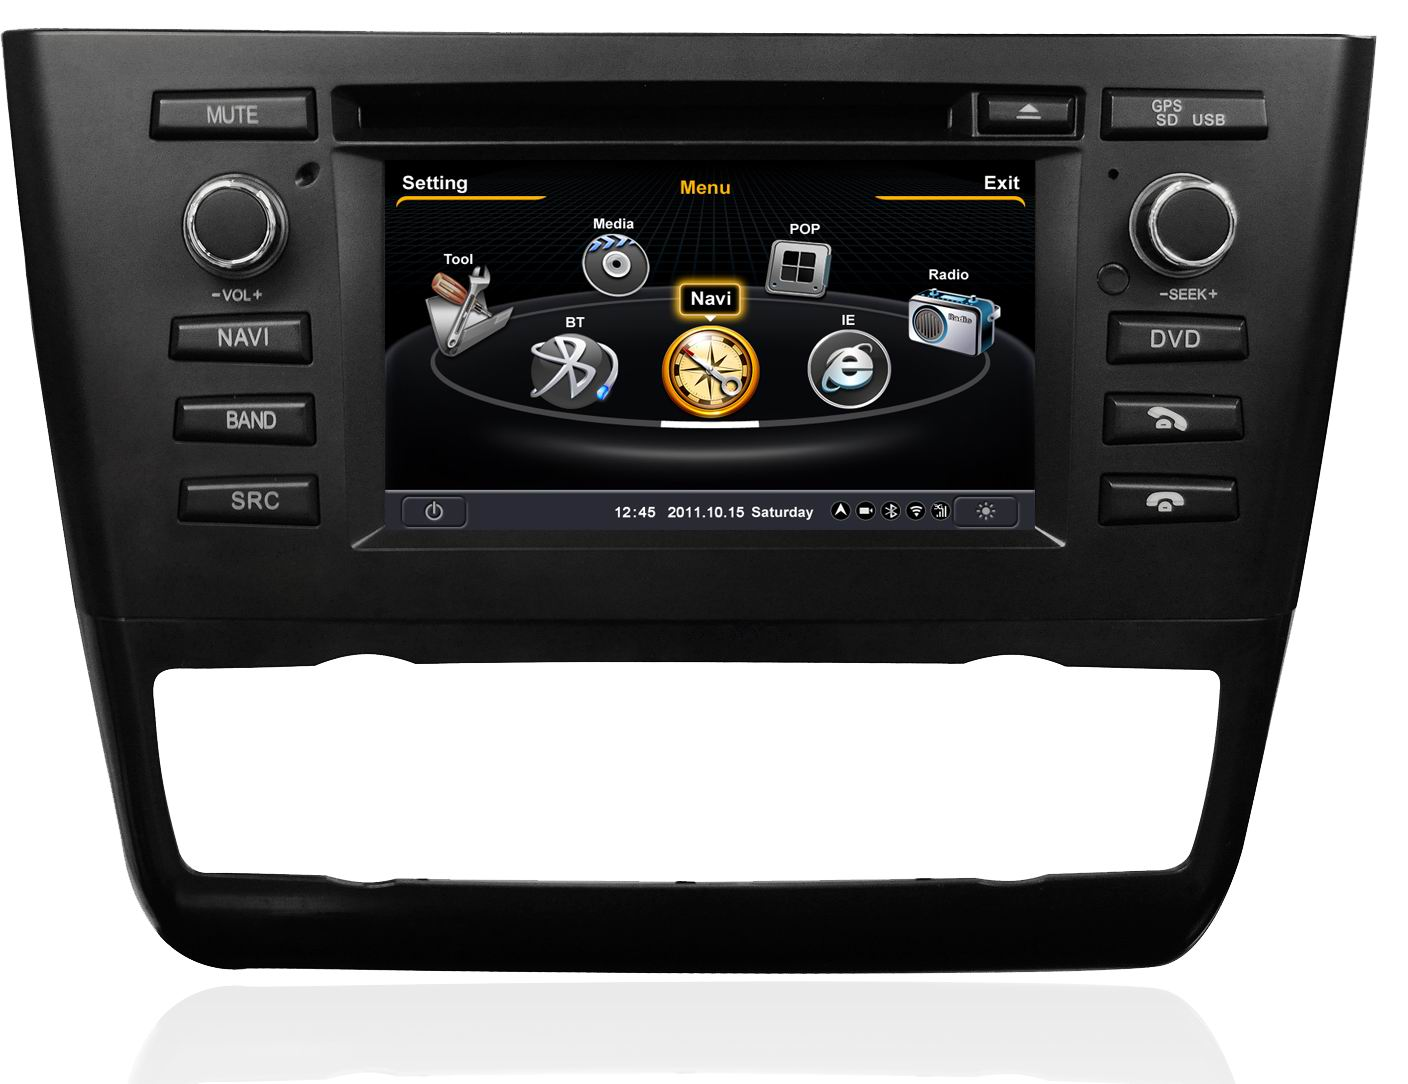 autoradio gps bmw s rie 1 e81 e82 e87 e88 poste dvd usb bmw serie 1 autoradios gps. Black Bedroom Furniture Sets. Home Design Ideas